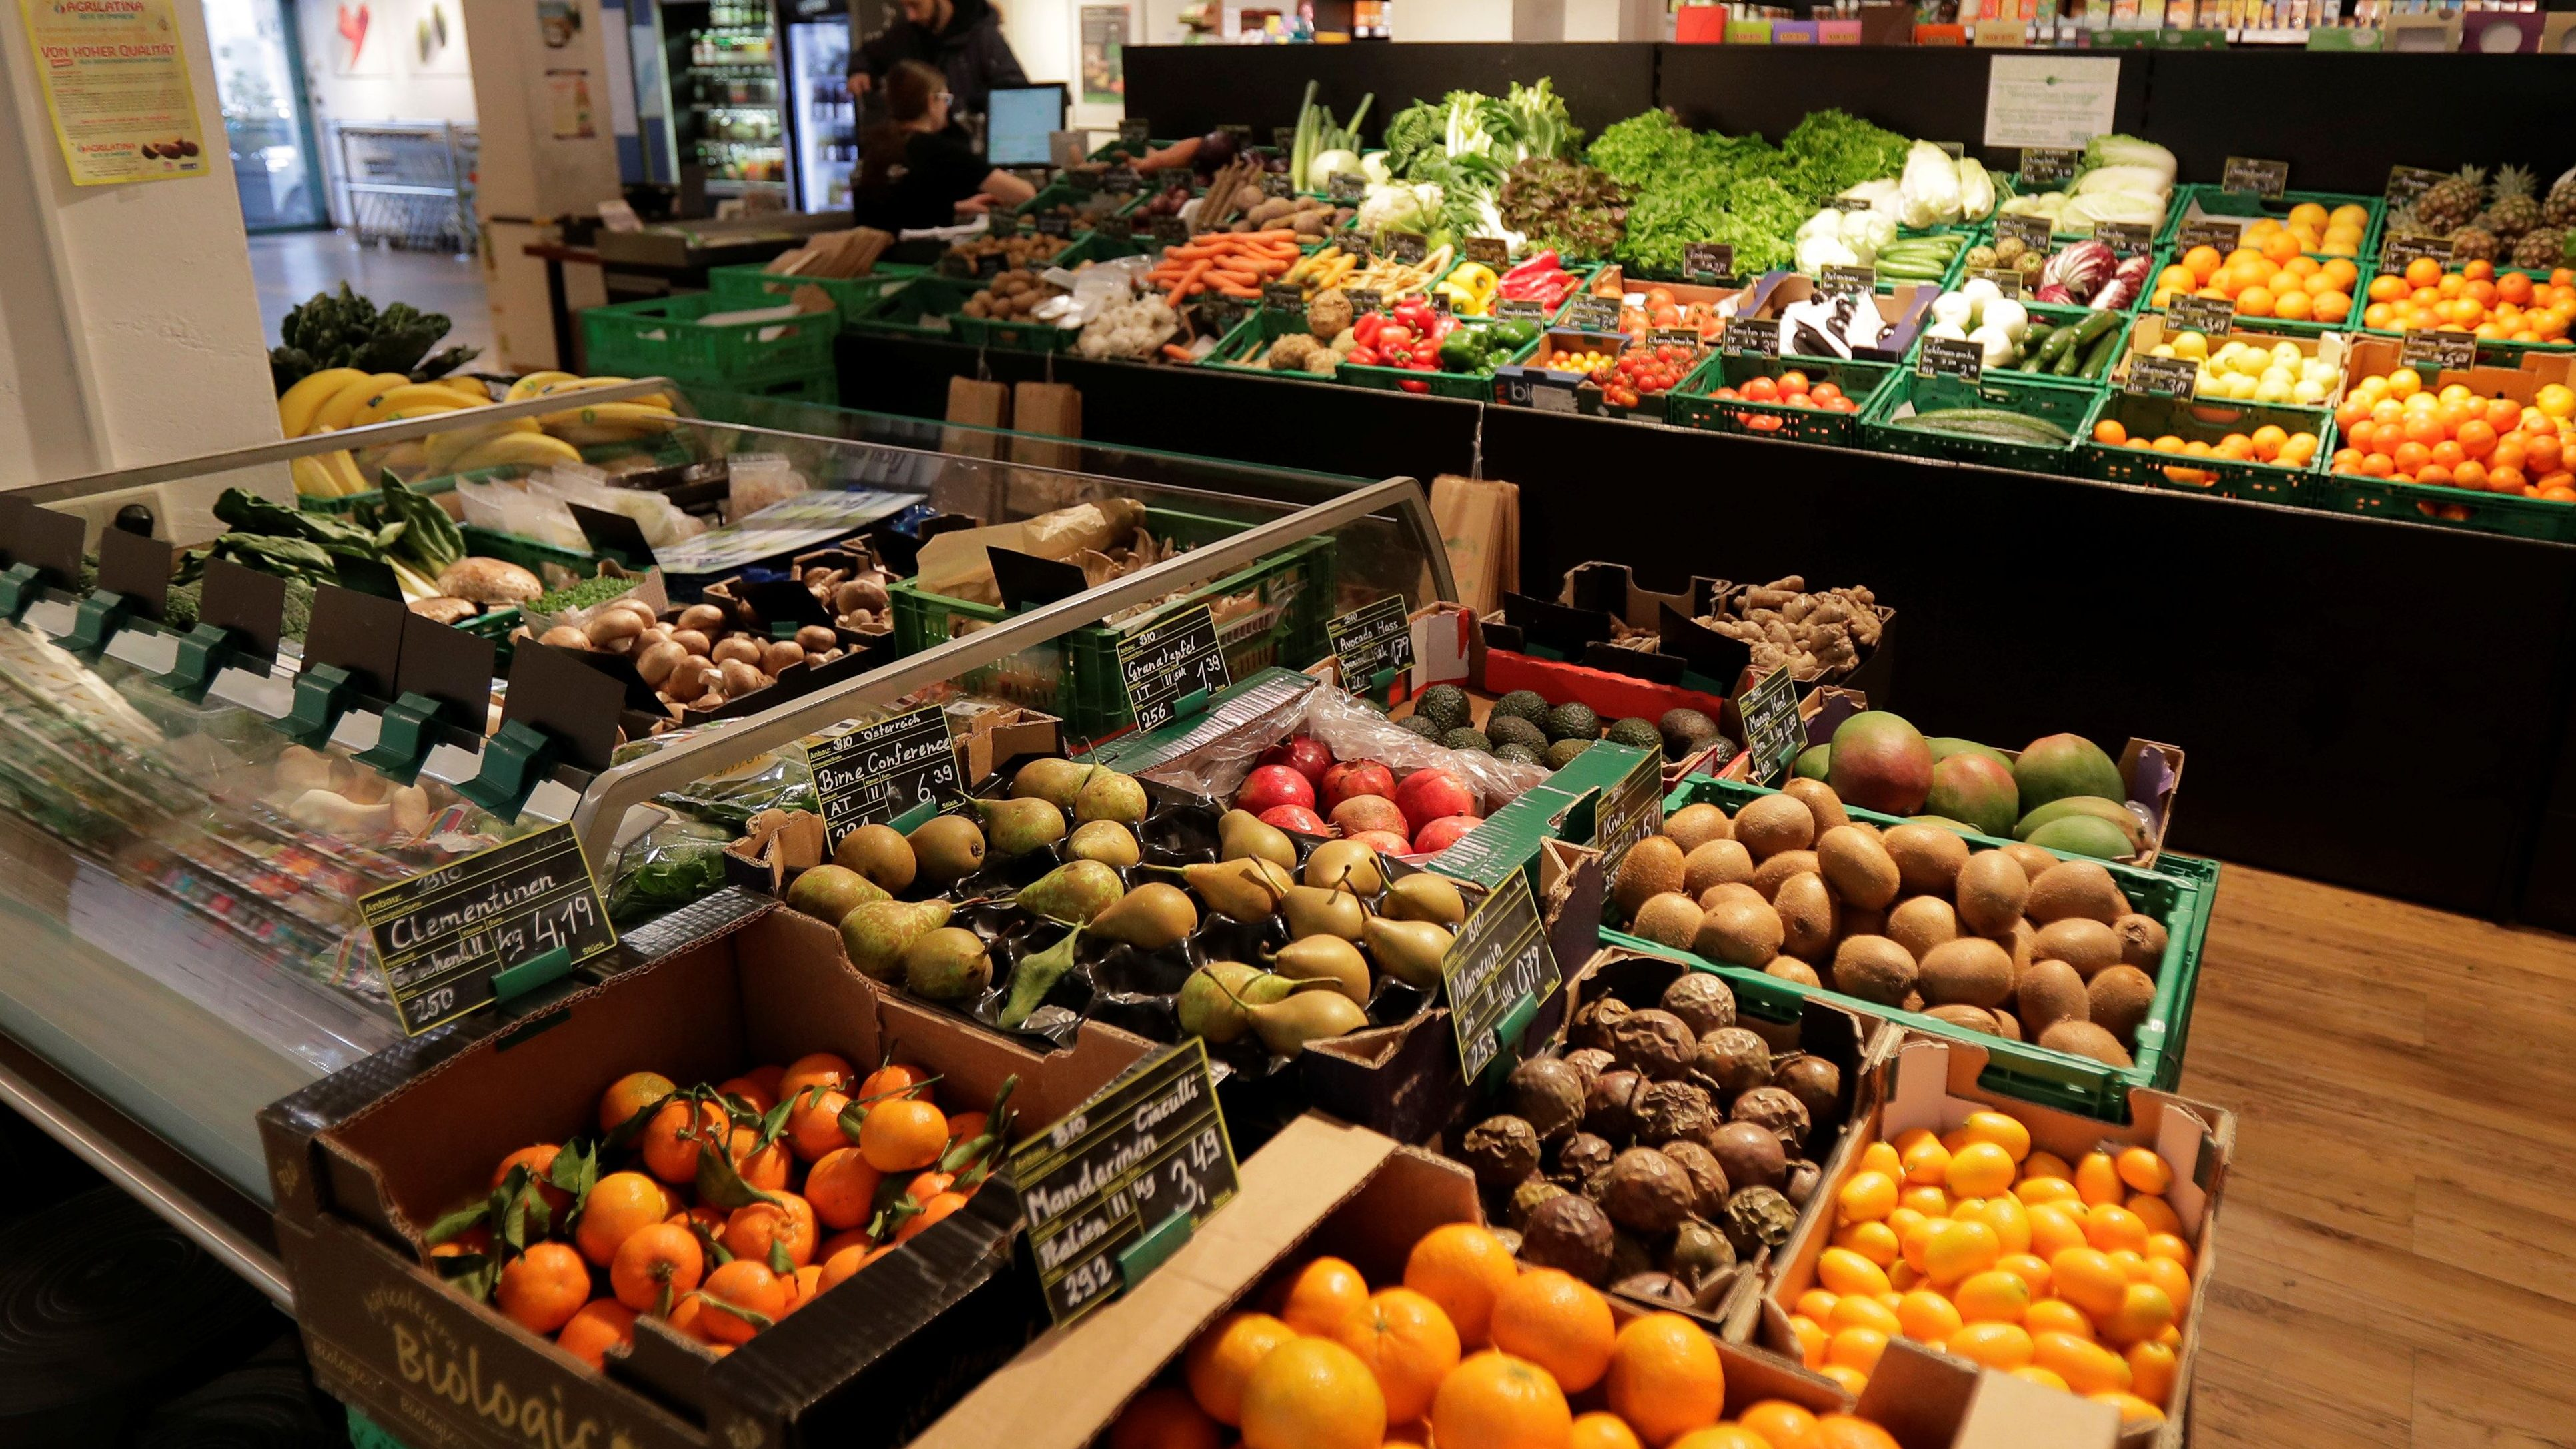 Fruits and vegetables are on display at Maran Vegan, Austria's first strictly vegan supermarket, in Vienna, Austria January 31, 2018.